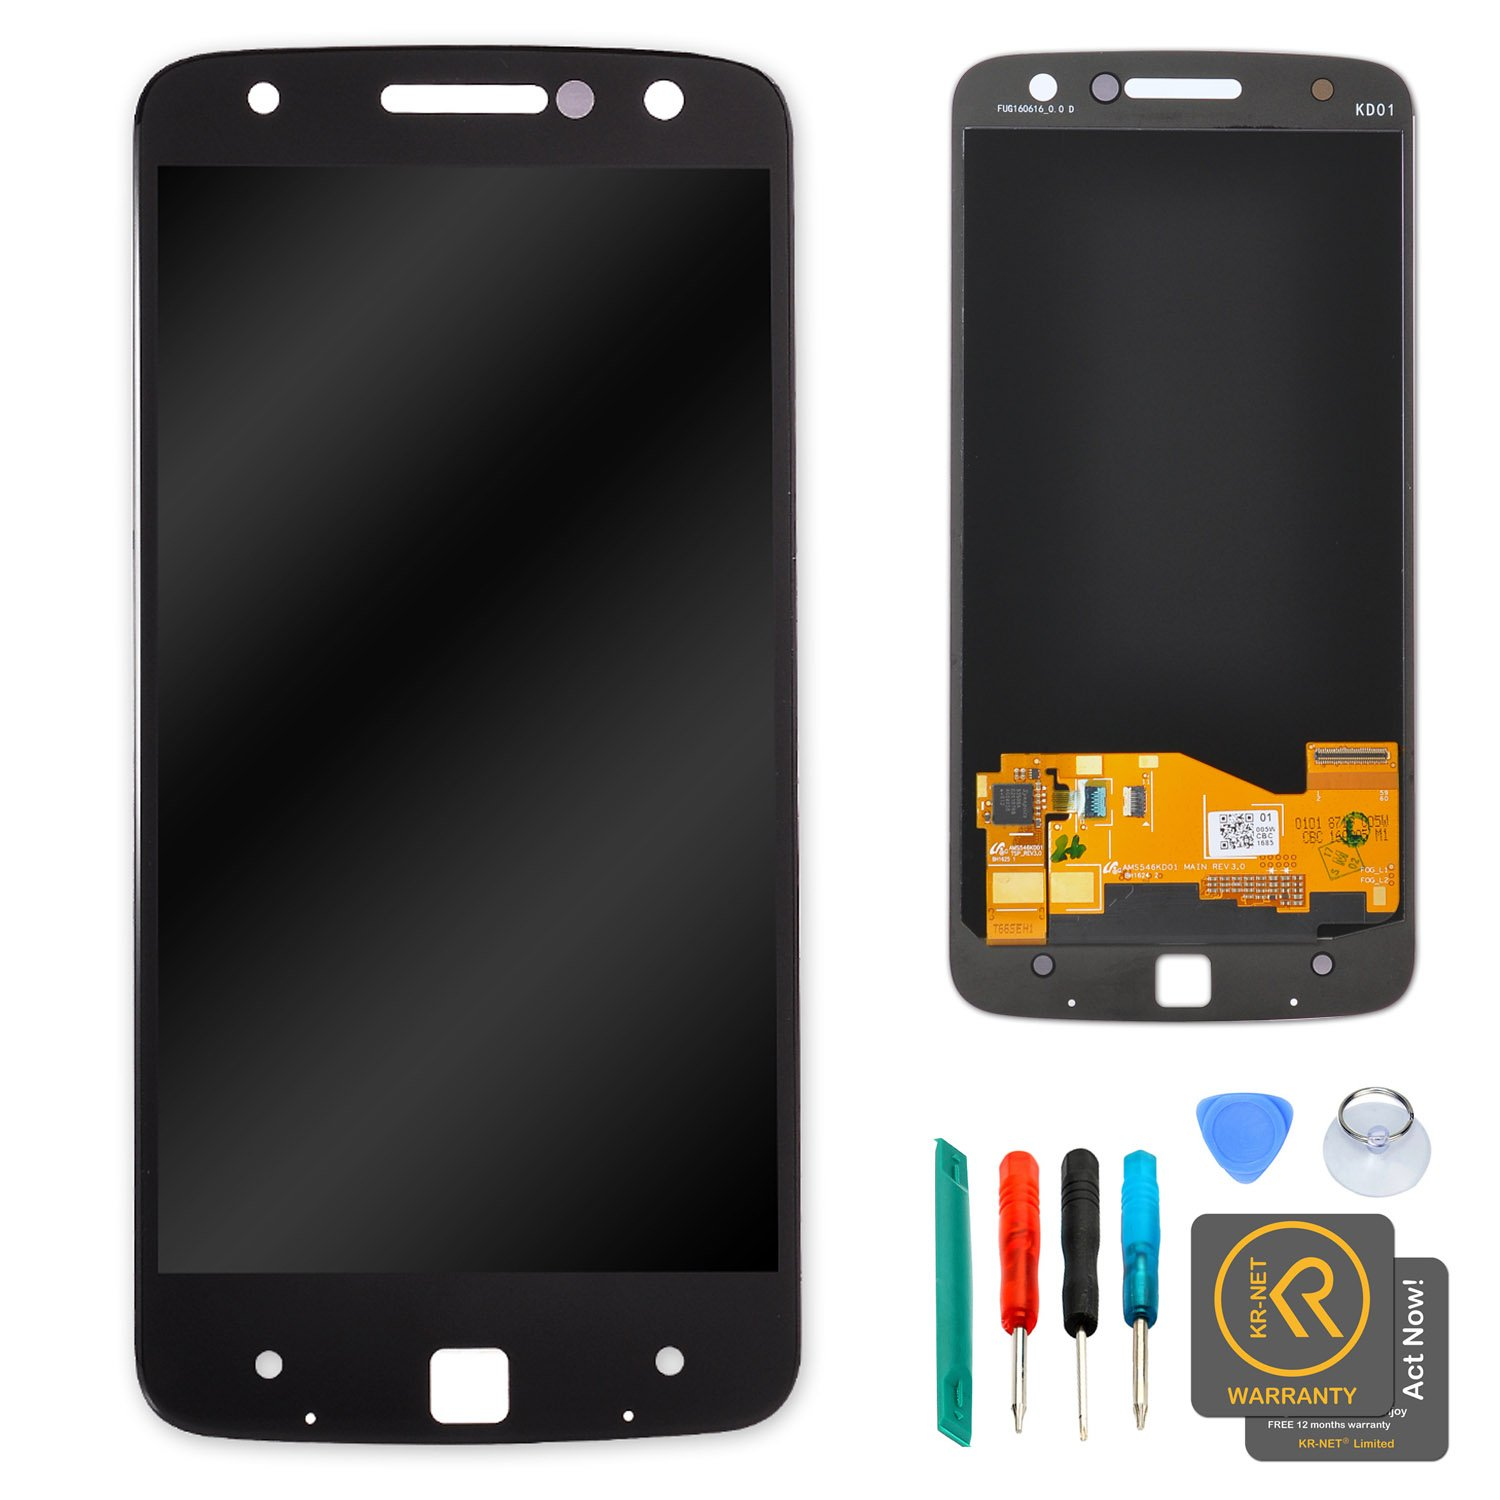 KR-NET Display LCD Touch Screen Digitizer Assembly Replacement for Moto Z XT1650 w/Repair Tools (Black)